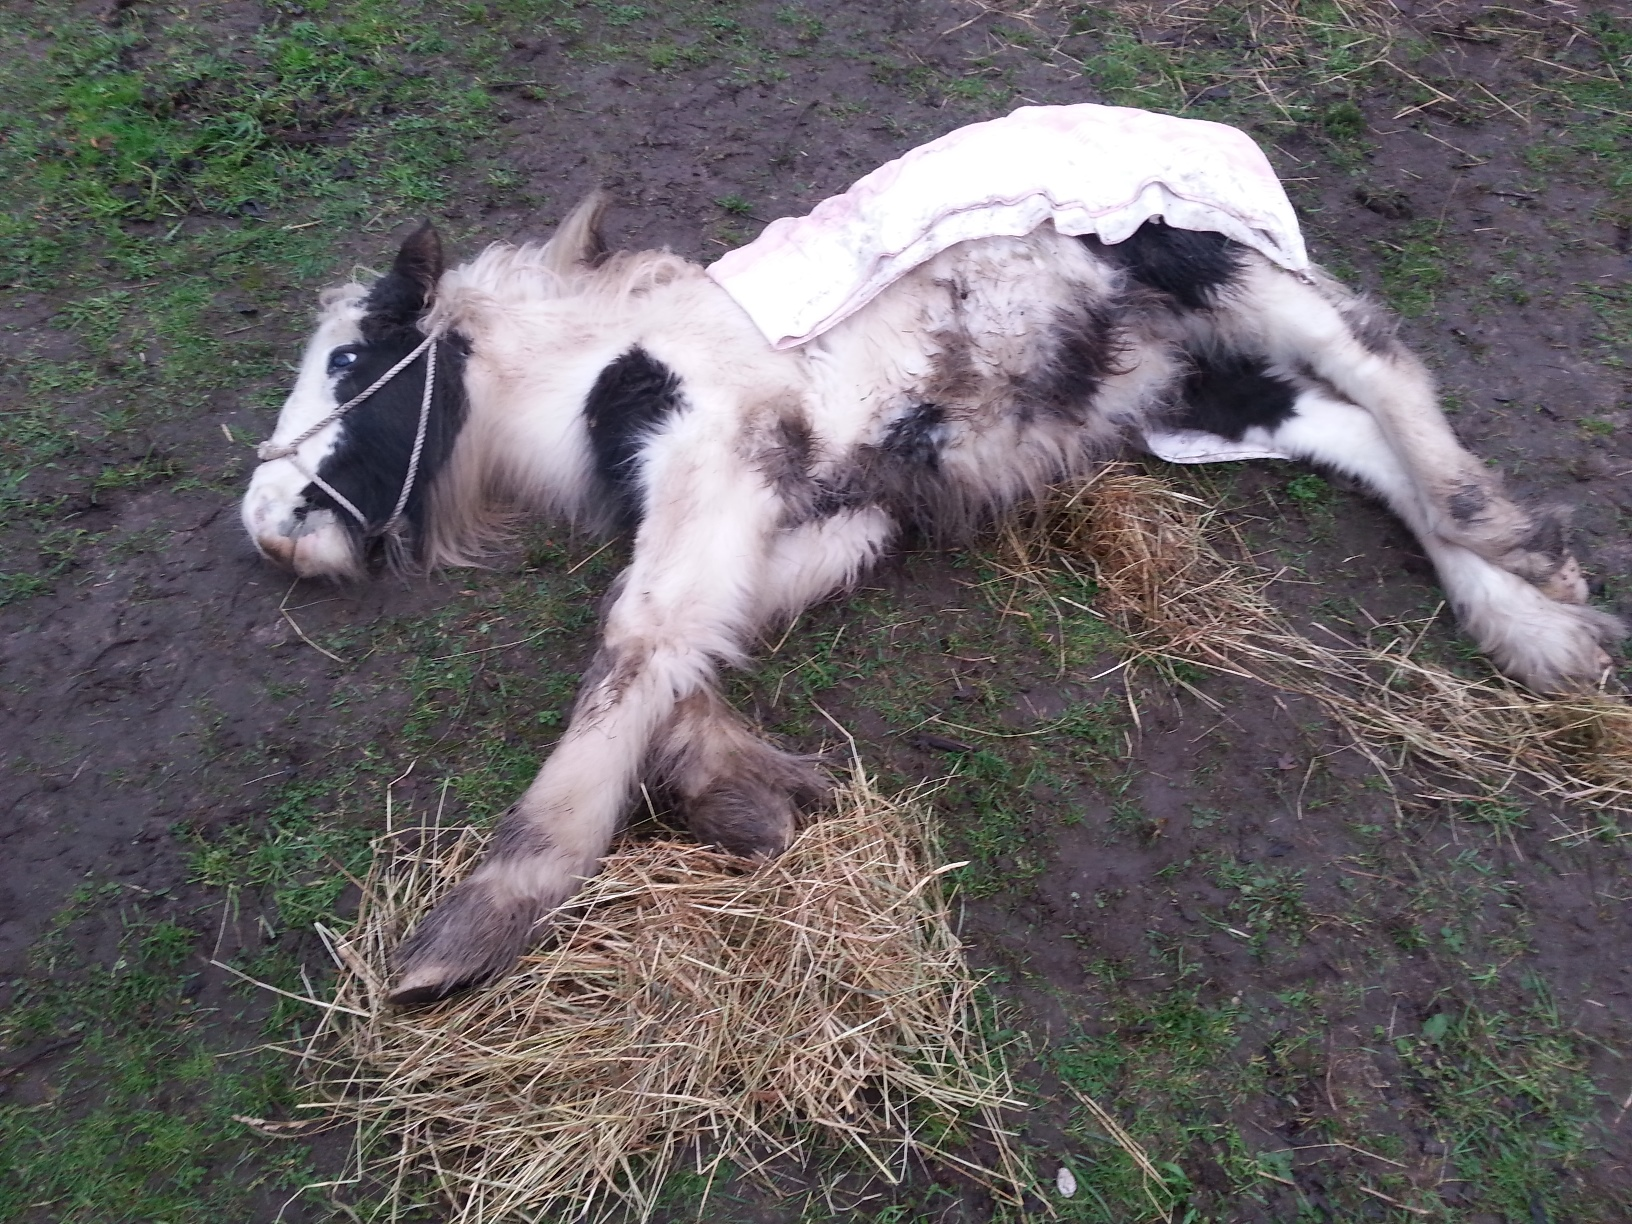 Cruelty like this is unacceptable, as Mr Groves found guilty (Credit: World Horse Welfare)